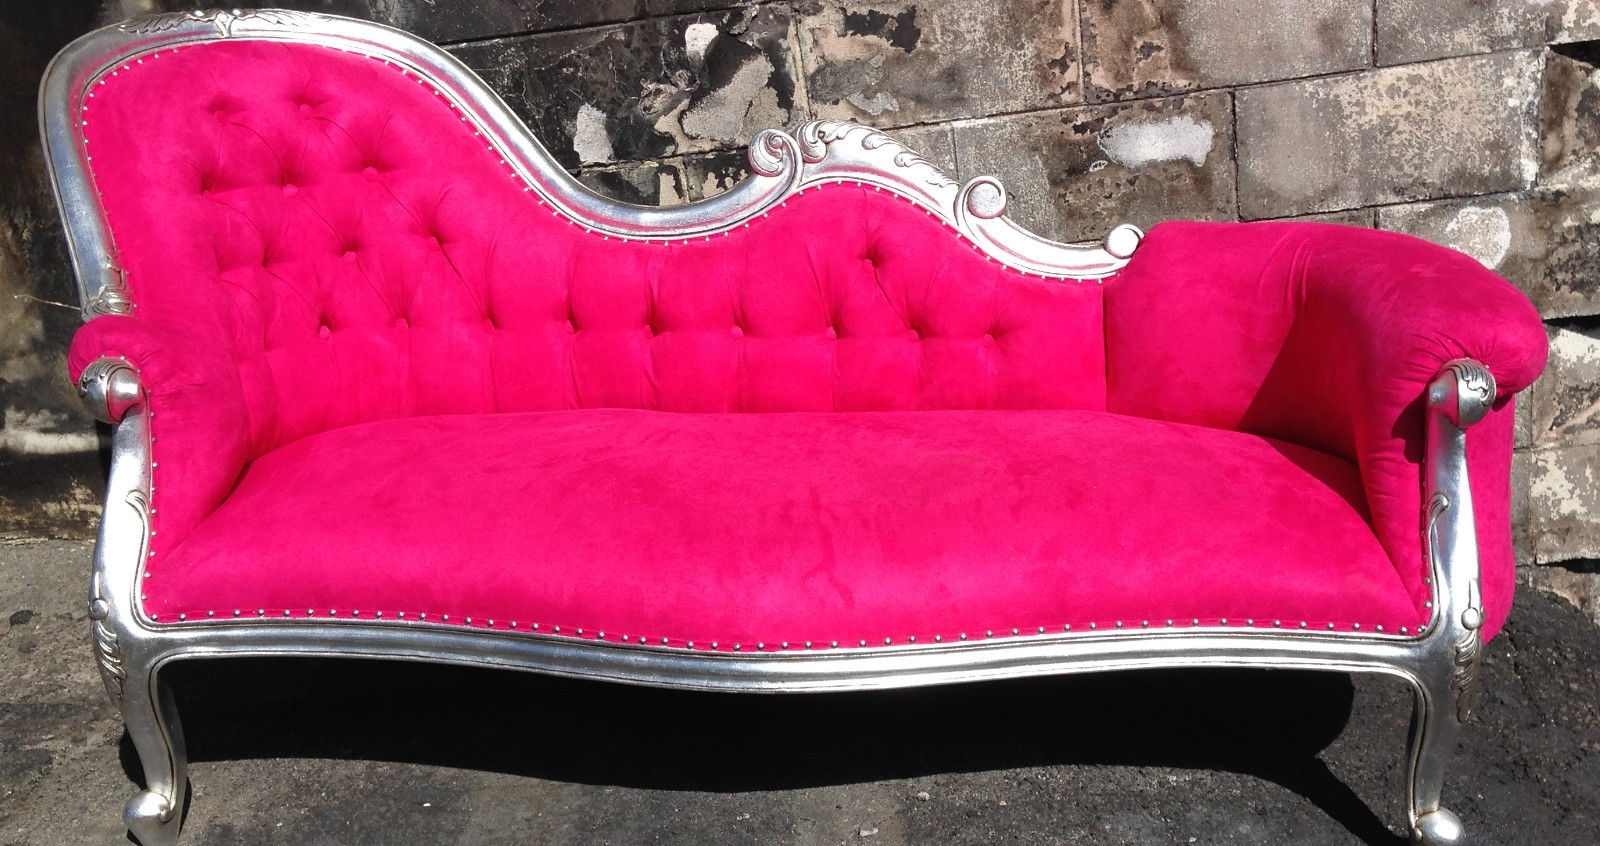 Rockstar Pink Chaise Lounge Chesterfield Sofa Queen Loveseat Couch Pertaining To Preferred Pink Chaises (View 12 of 15)